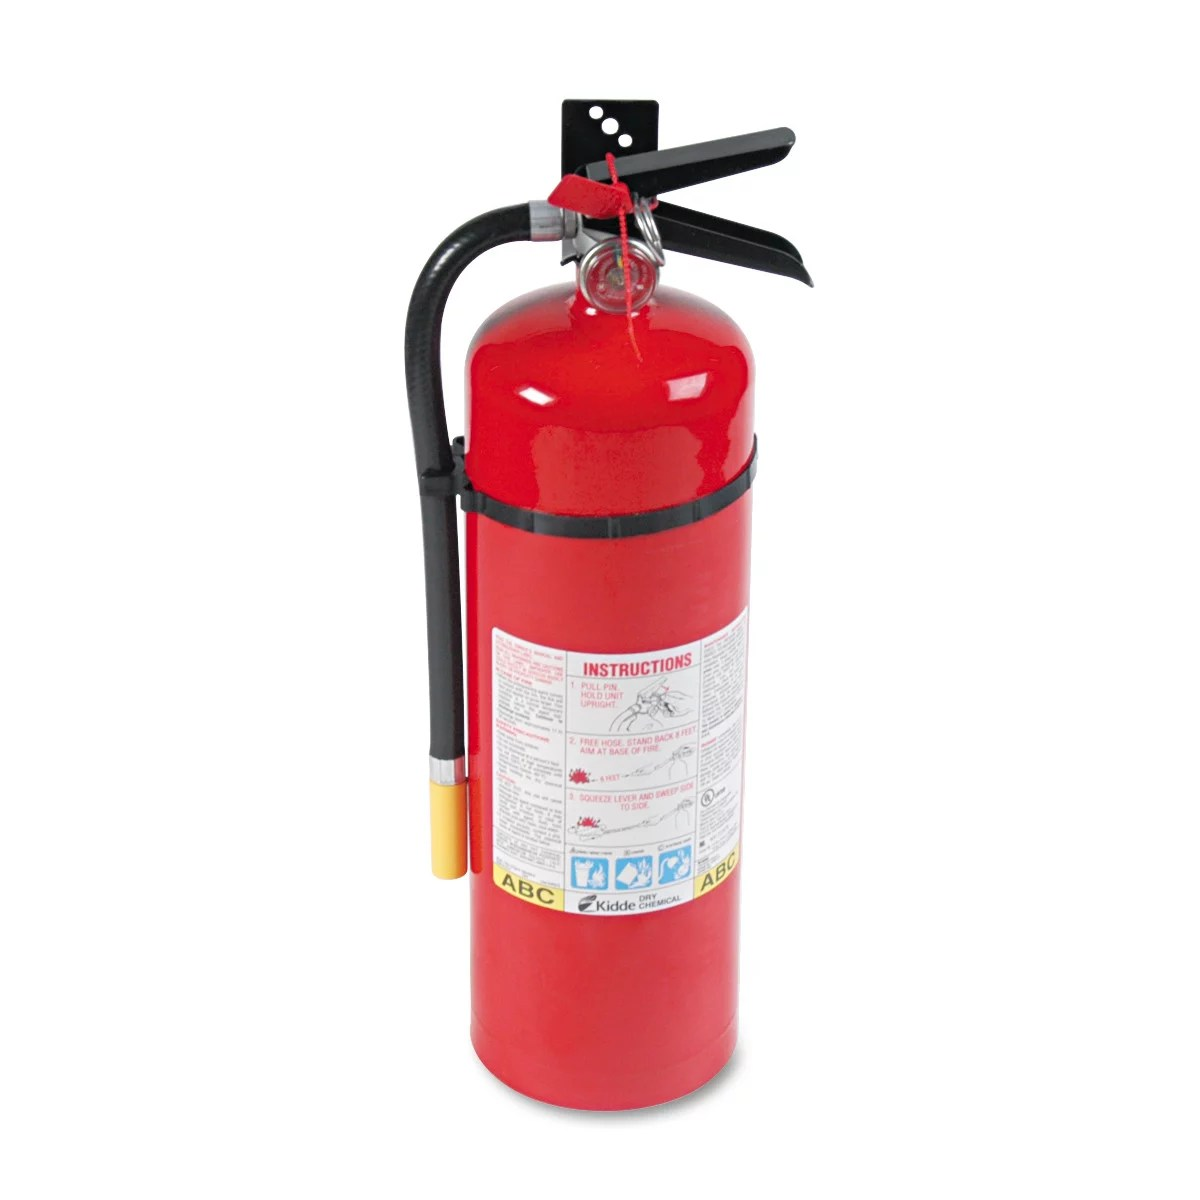 Kidde ProLine Pro 10lb 10MP Fire Extinguisher, 4 A, 60 B:C, 195psi, 19.52h x 5.21 dia